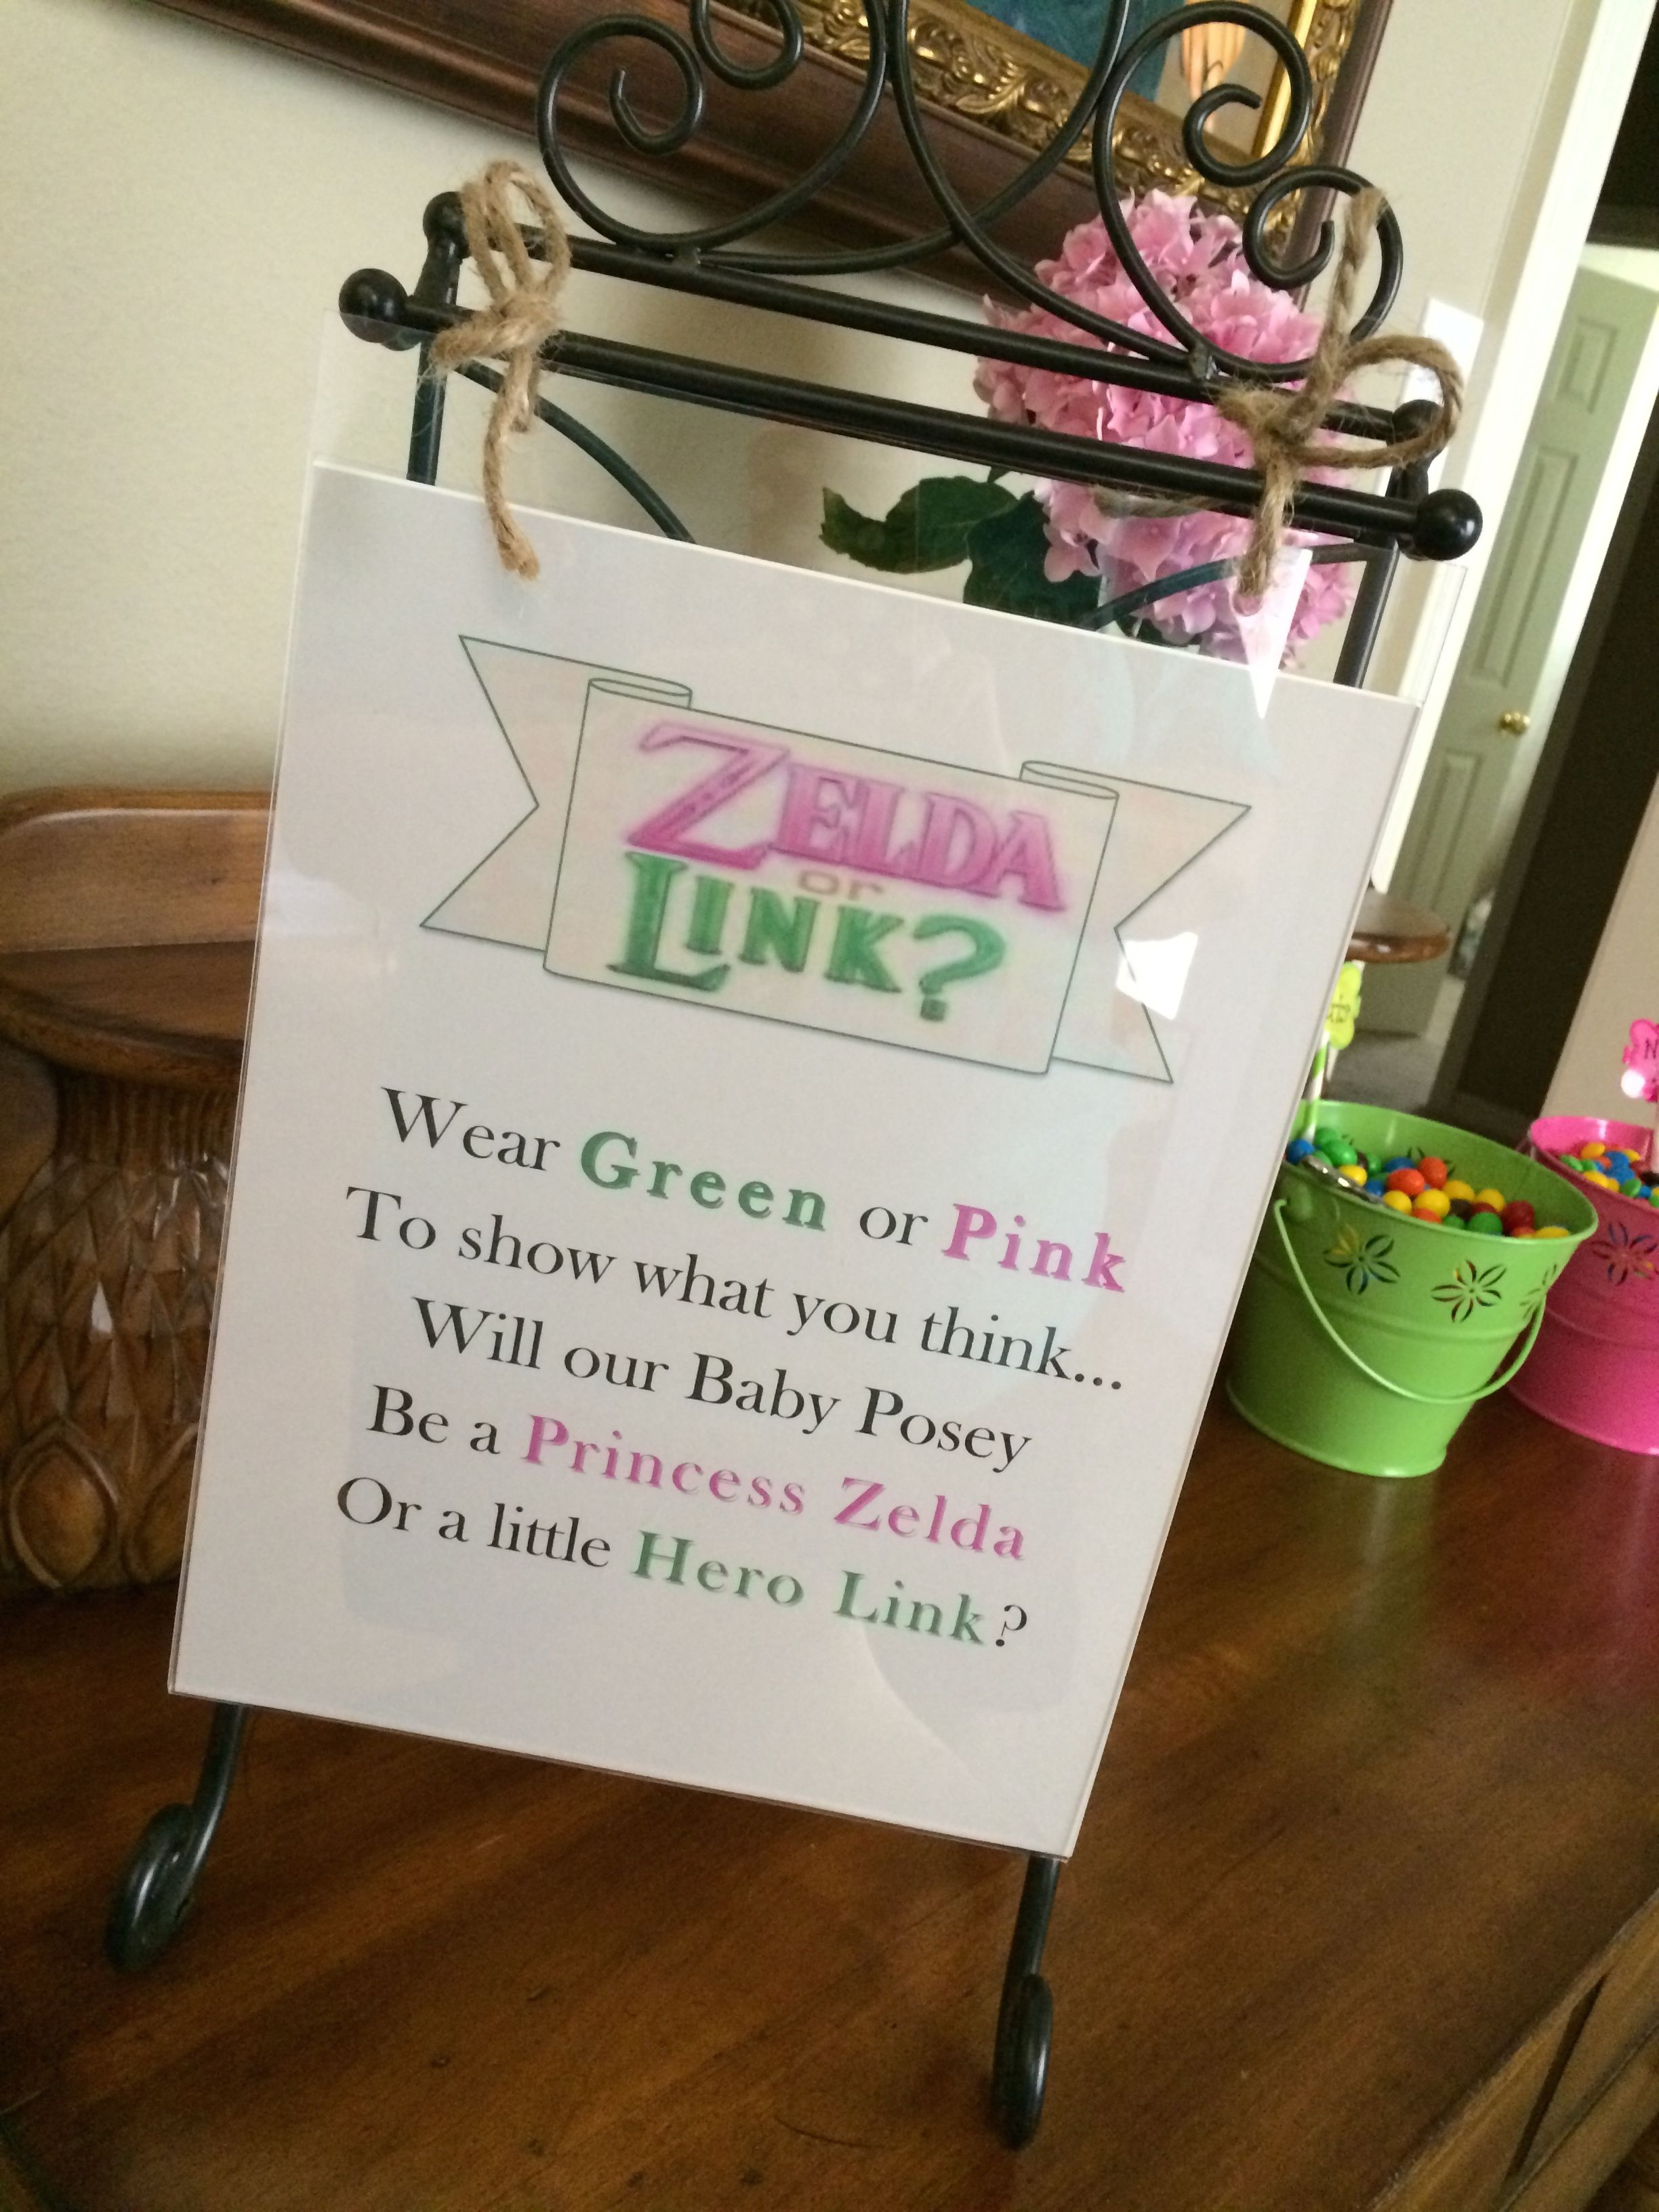 Wear Green Or Pink To Show What You Think Will